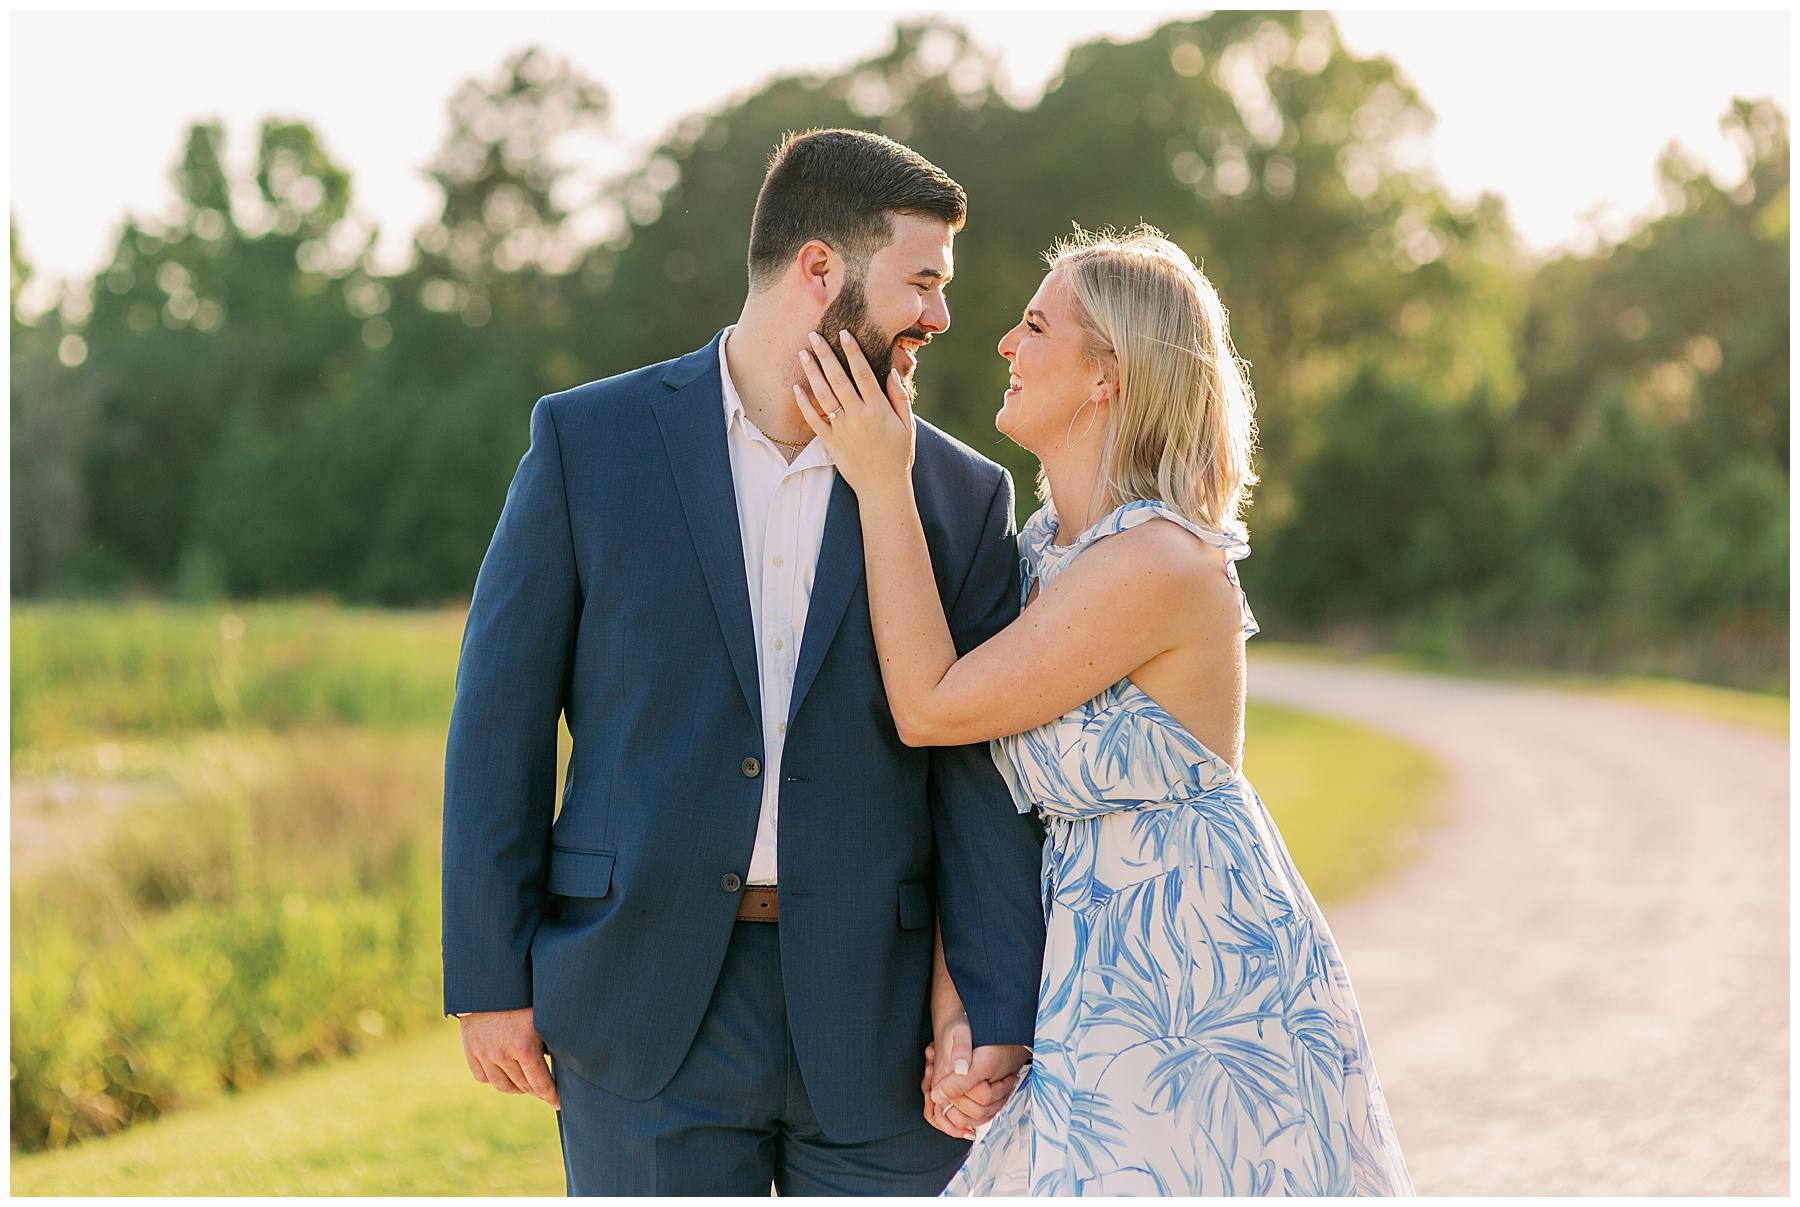 Girl shows off engagement ring in photo with her fiance